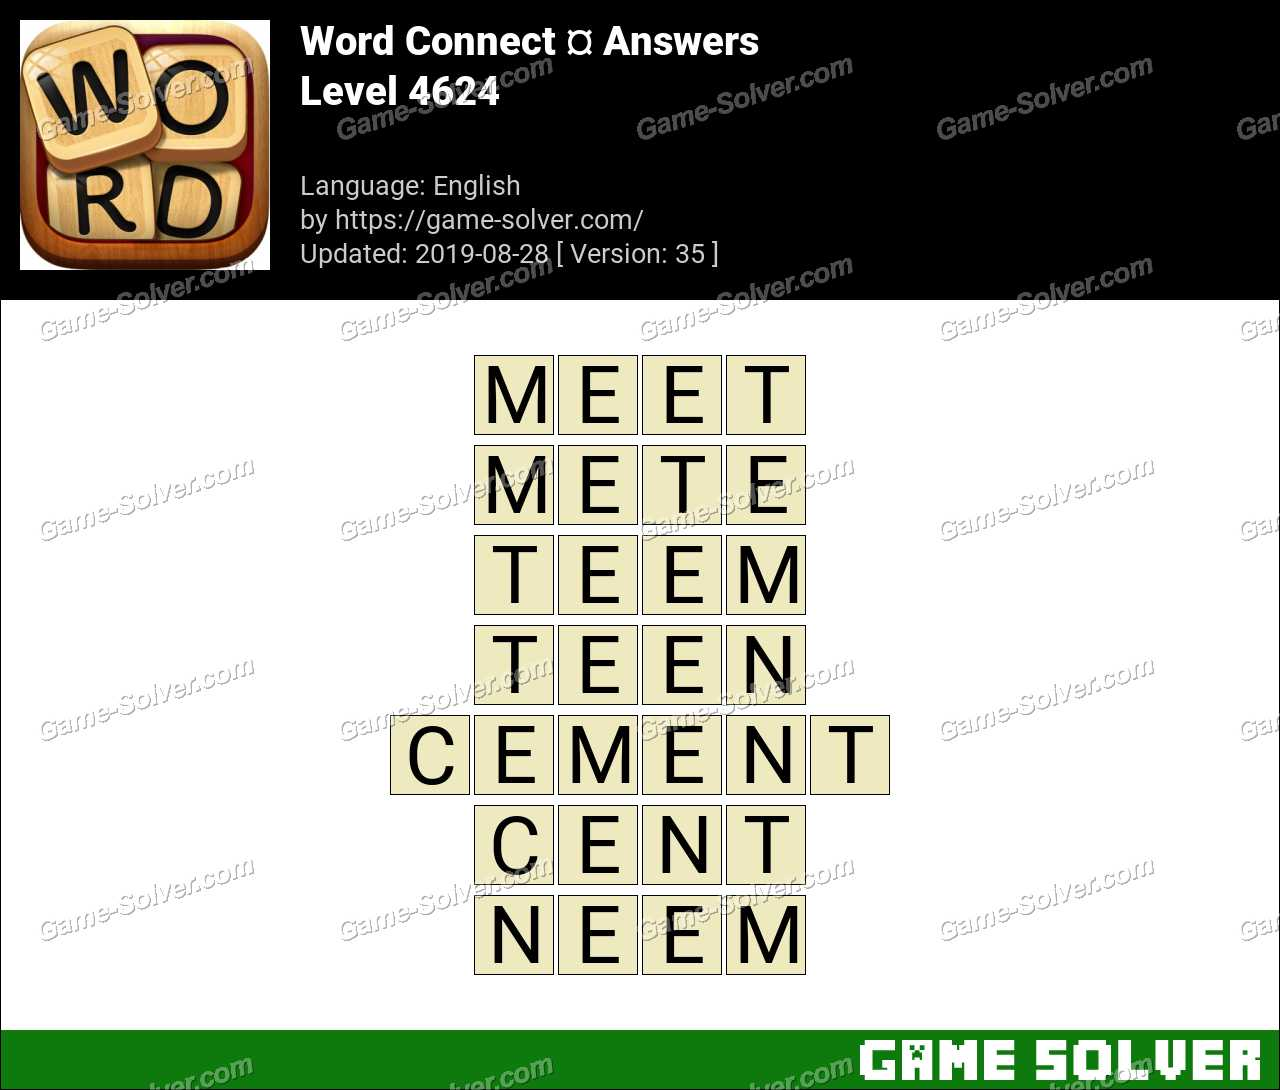 Word Connect Level 4624 Answers